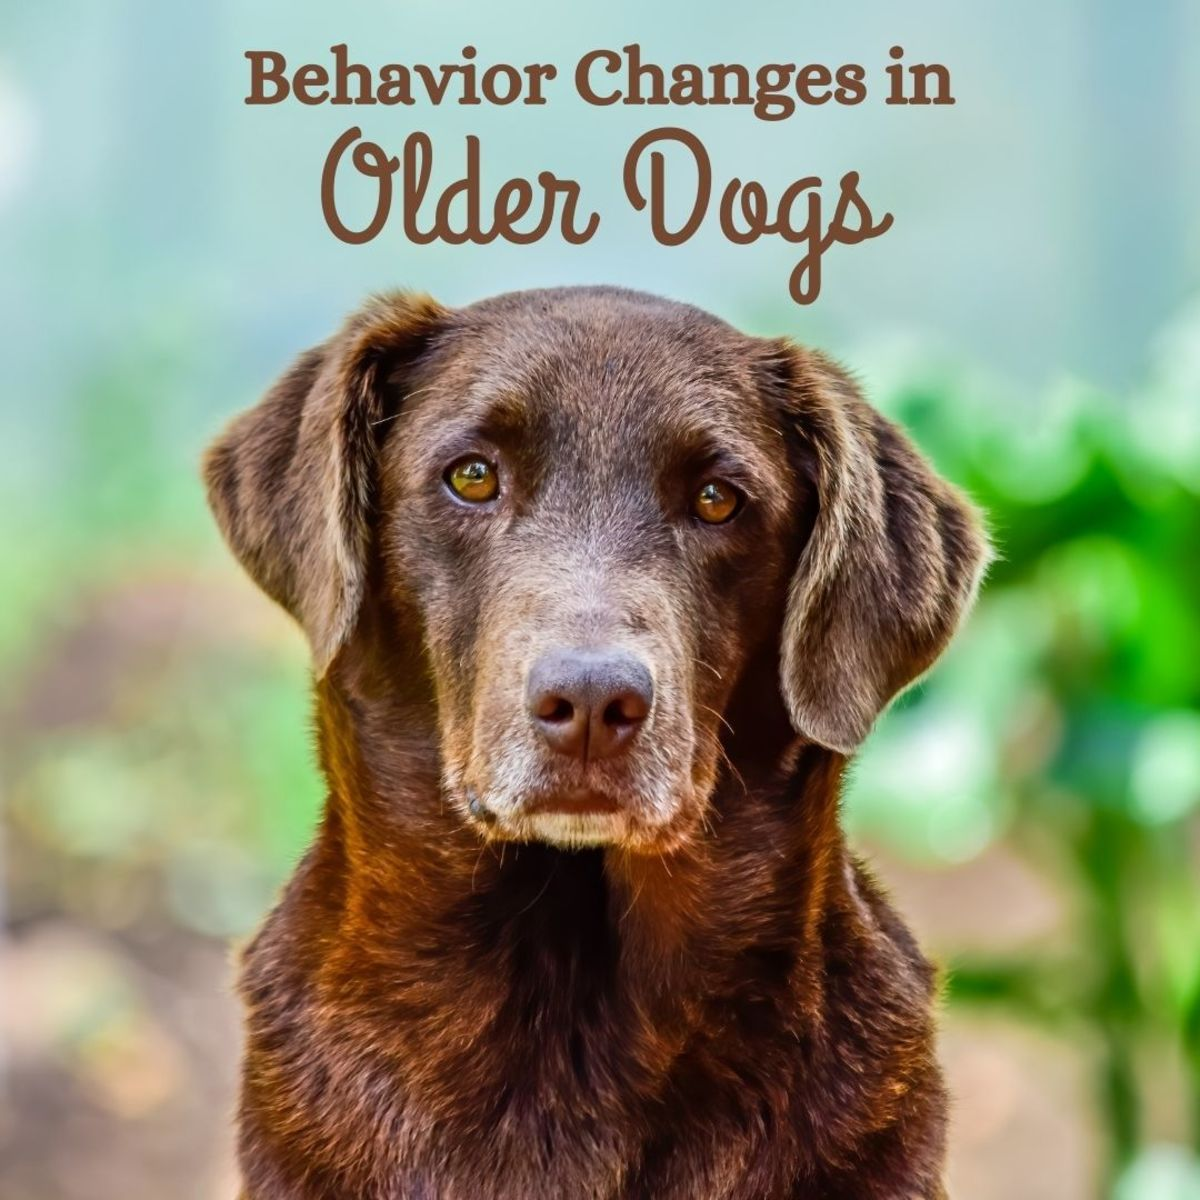 Older dogs often exhibit behavioral changes—here's what you can expect.